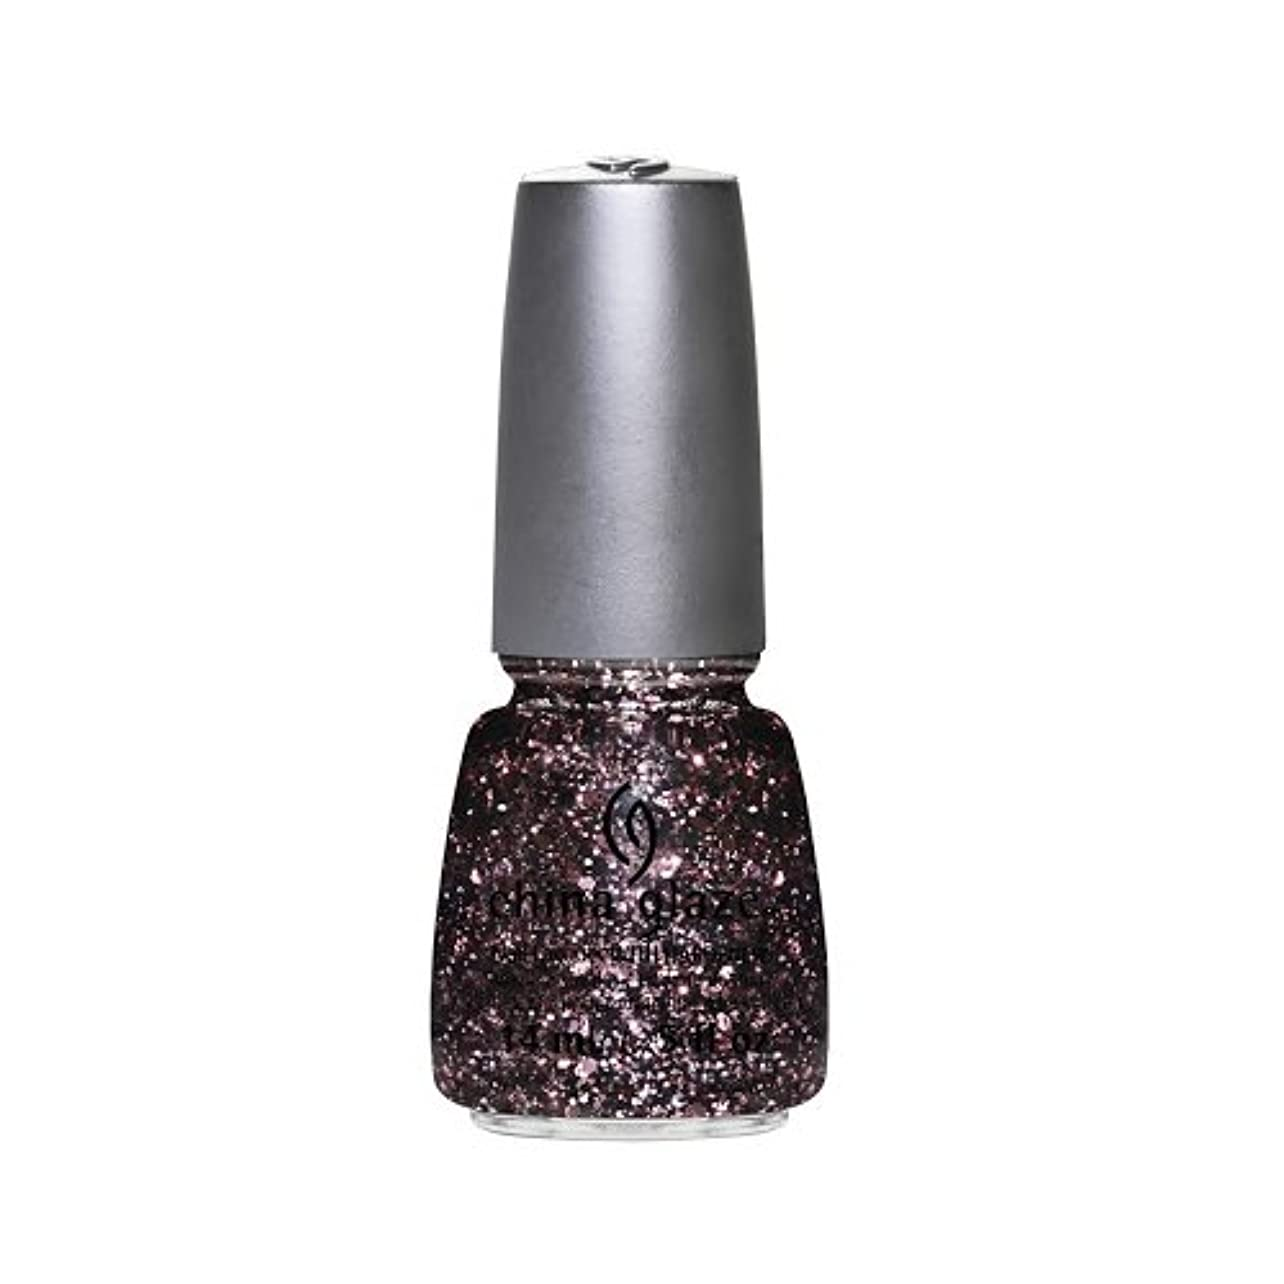 正しくパイロット道路を作るプロセスCHINA GLAZE Nail Lacquer - Glitz Bitz ???n Pieces Collection - Razzle Me Dazzle Me (並行輸入品)